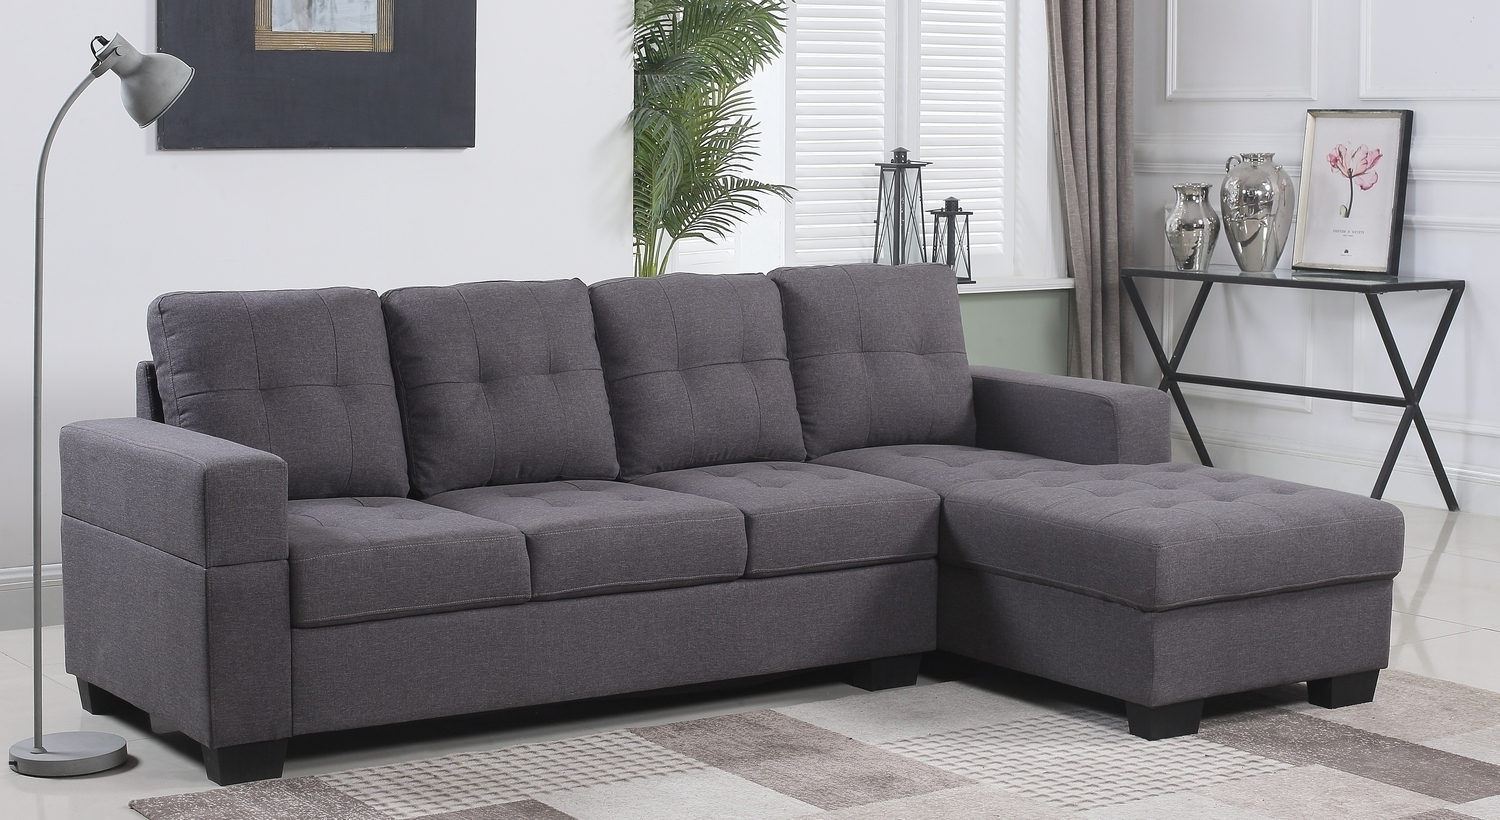 Scarborough Sectional Sofas In Best And Newest Comfort Night (View 12 of 15)